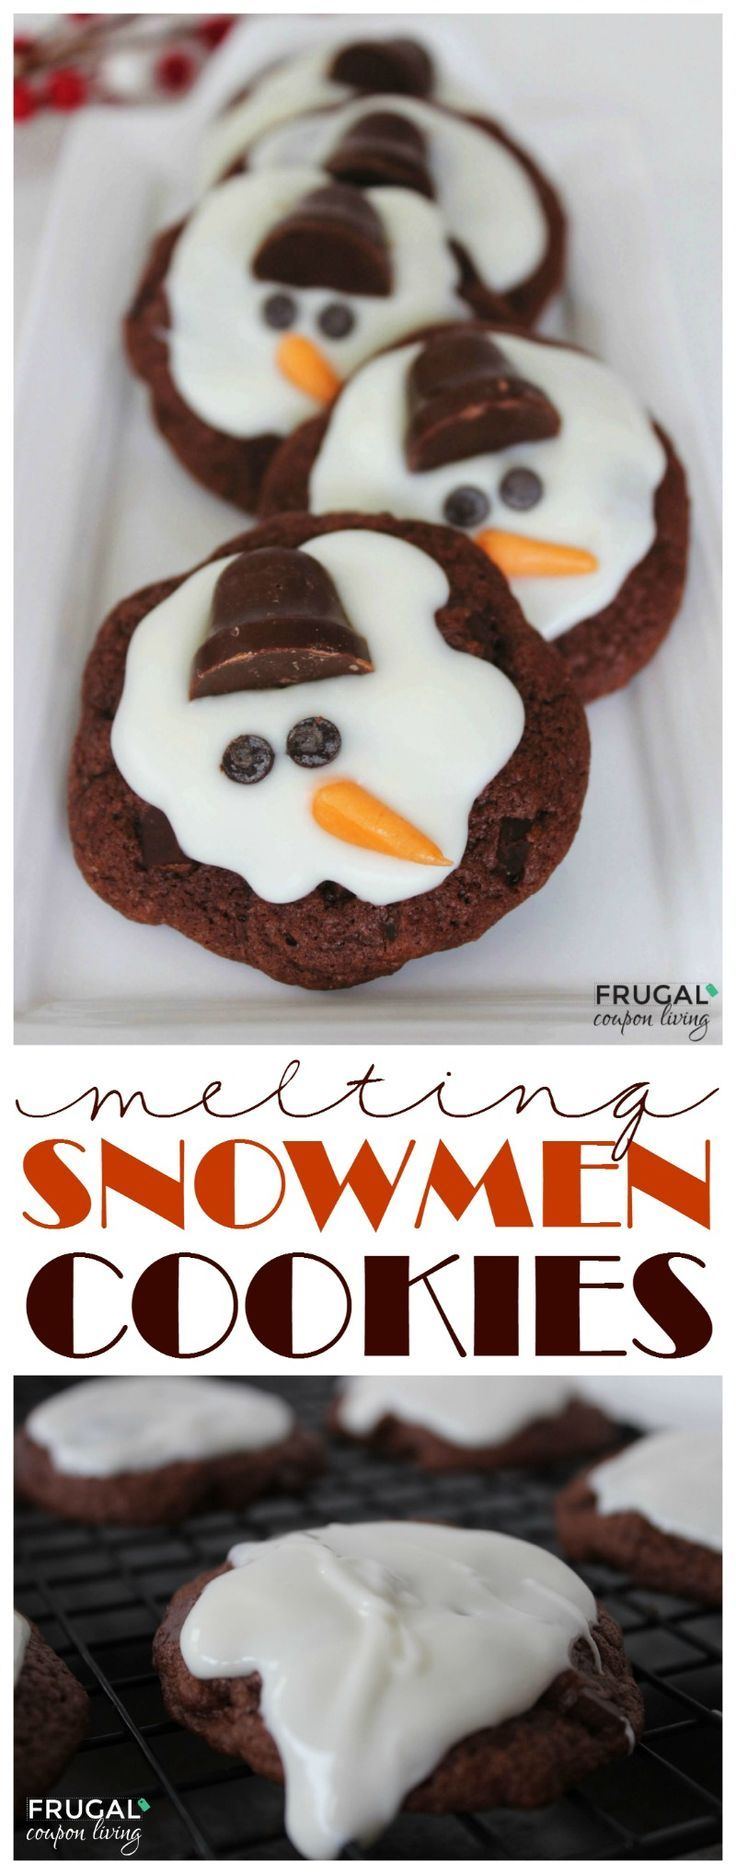 Frugal Coupon Living's Melting Snowman Cookies. These are a great idea for a Cookie Exchange Recipe for the Holiday season. Great classroom party idea too!